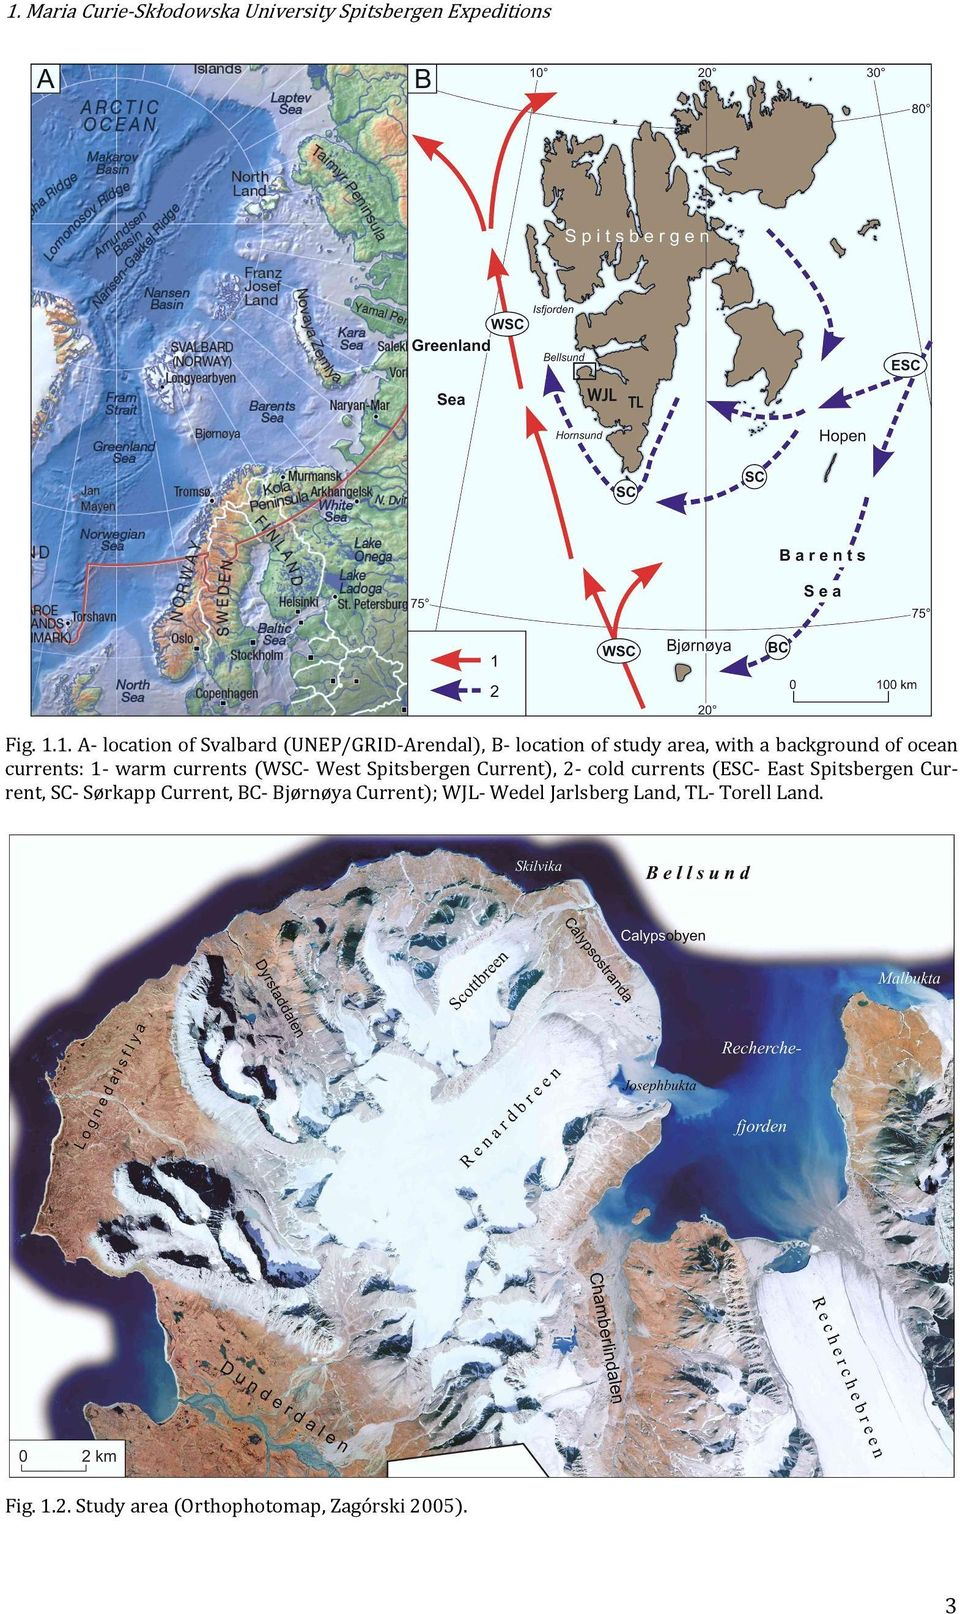 (WSC- West Spitsbergen Current), 2- cold currents (ESC- East Spitsbergen Current, SC- Sørkapp Current,